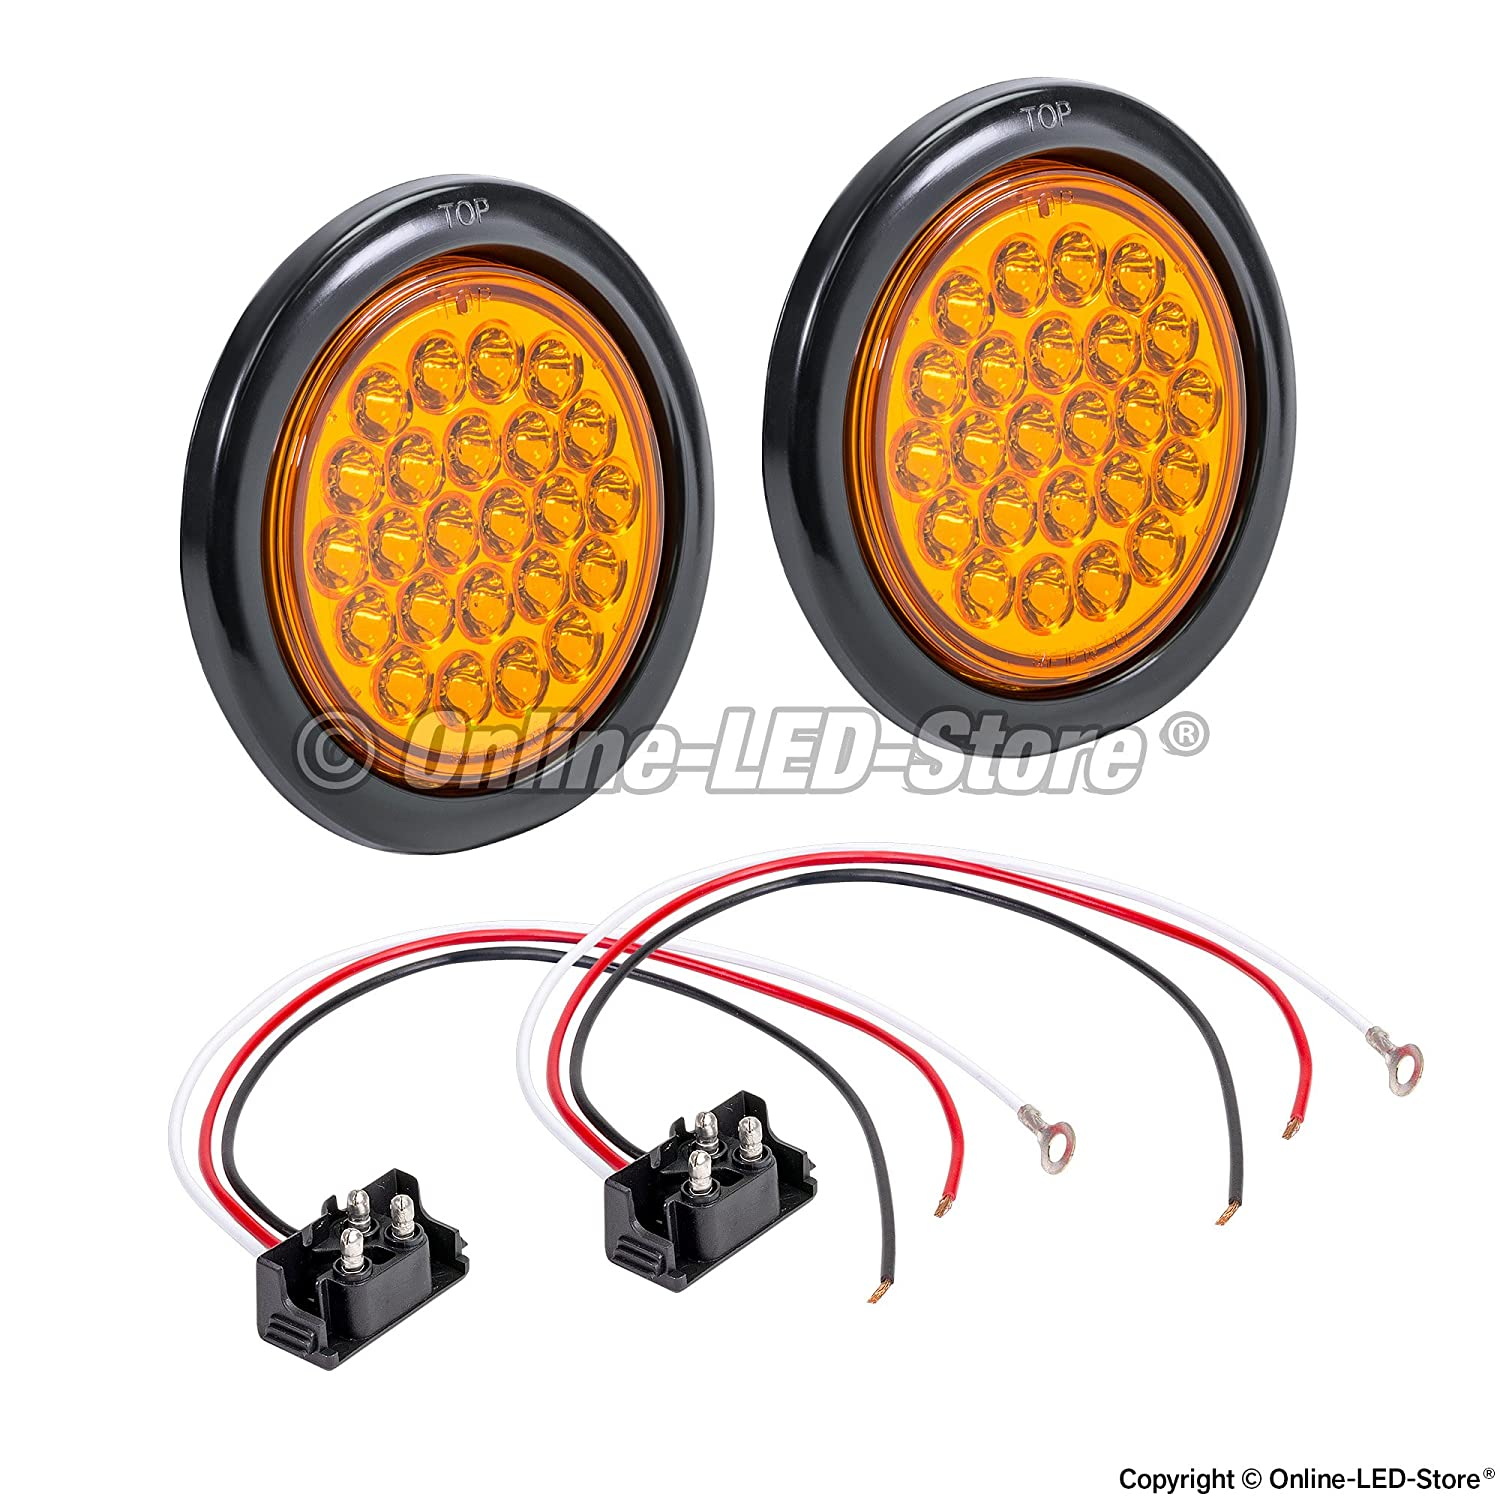 Reverse Back Up Trailer Lights for RV Trucks Jeep ONLINE LED STORE 2pc 4 Round White 24 LED Trailer Tail Lights IP67 Waterproof DOT Certified Grommet /& Plug Included